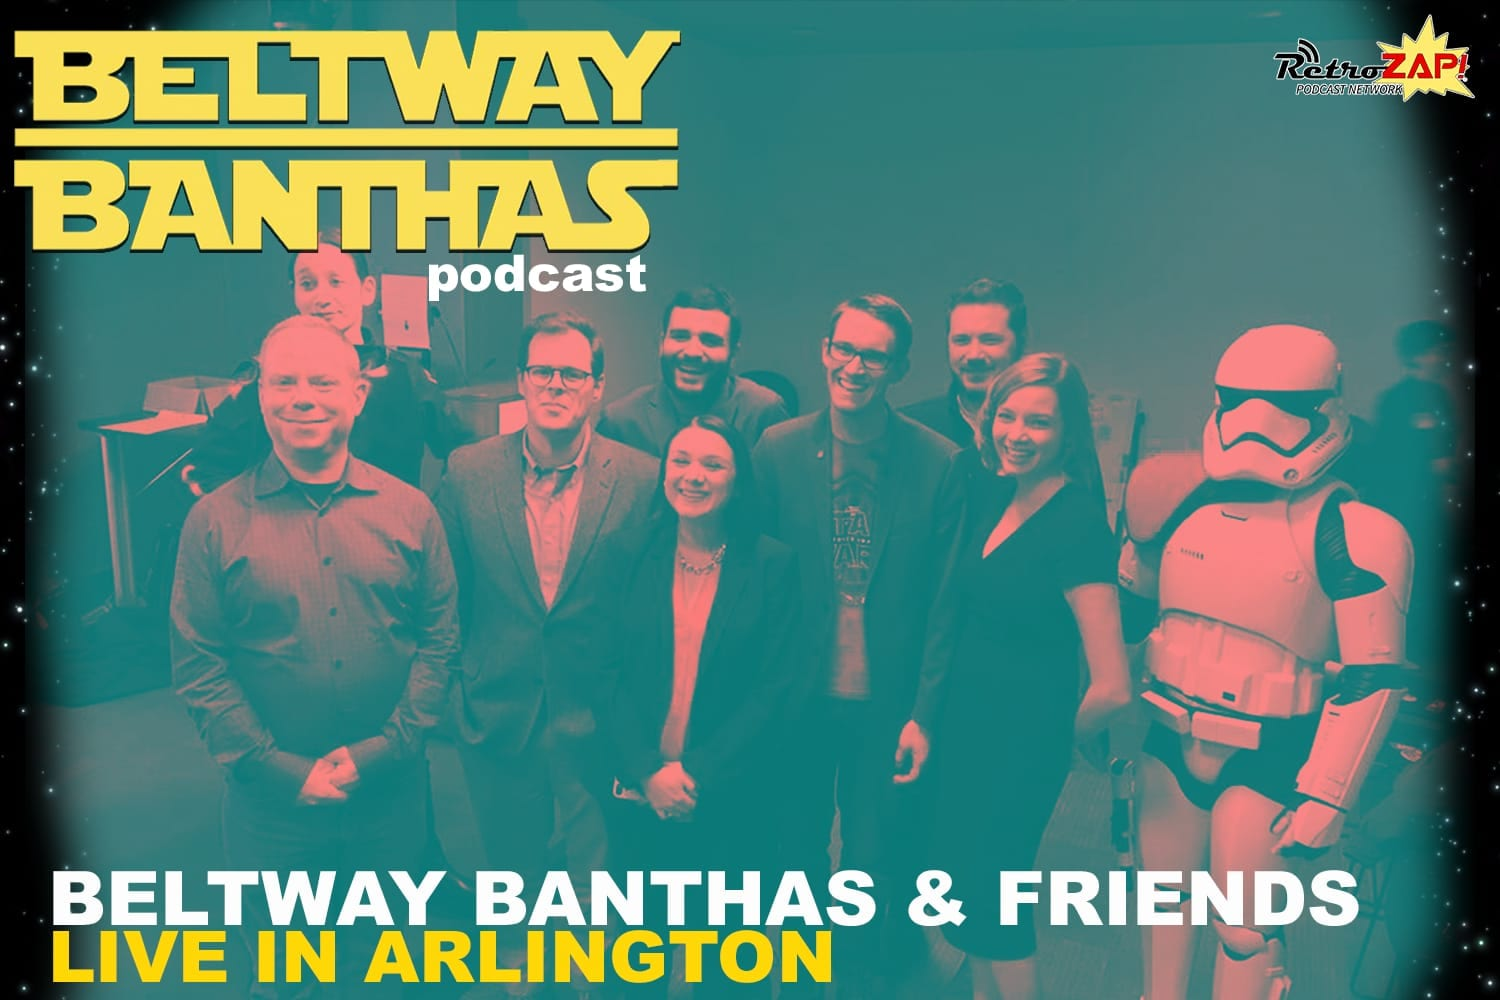 Beltway Banthas & Friends: Live Show in Arlington